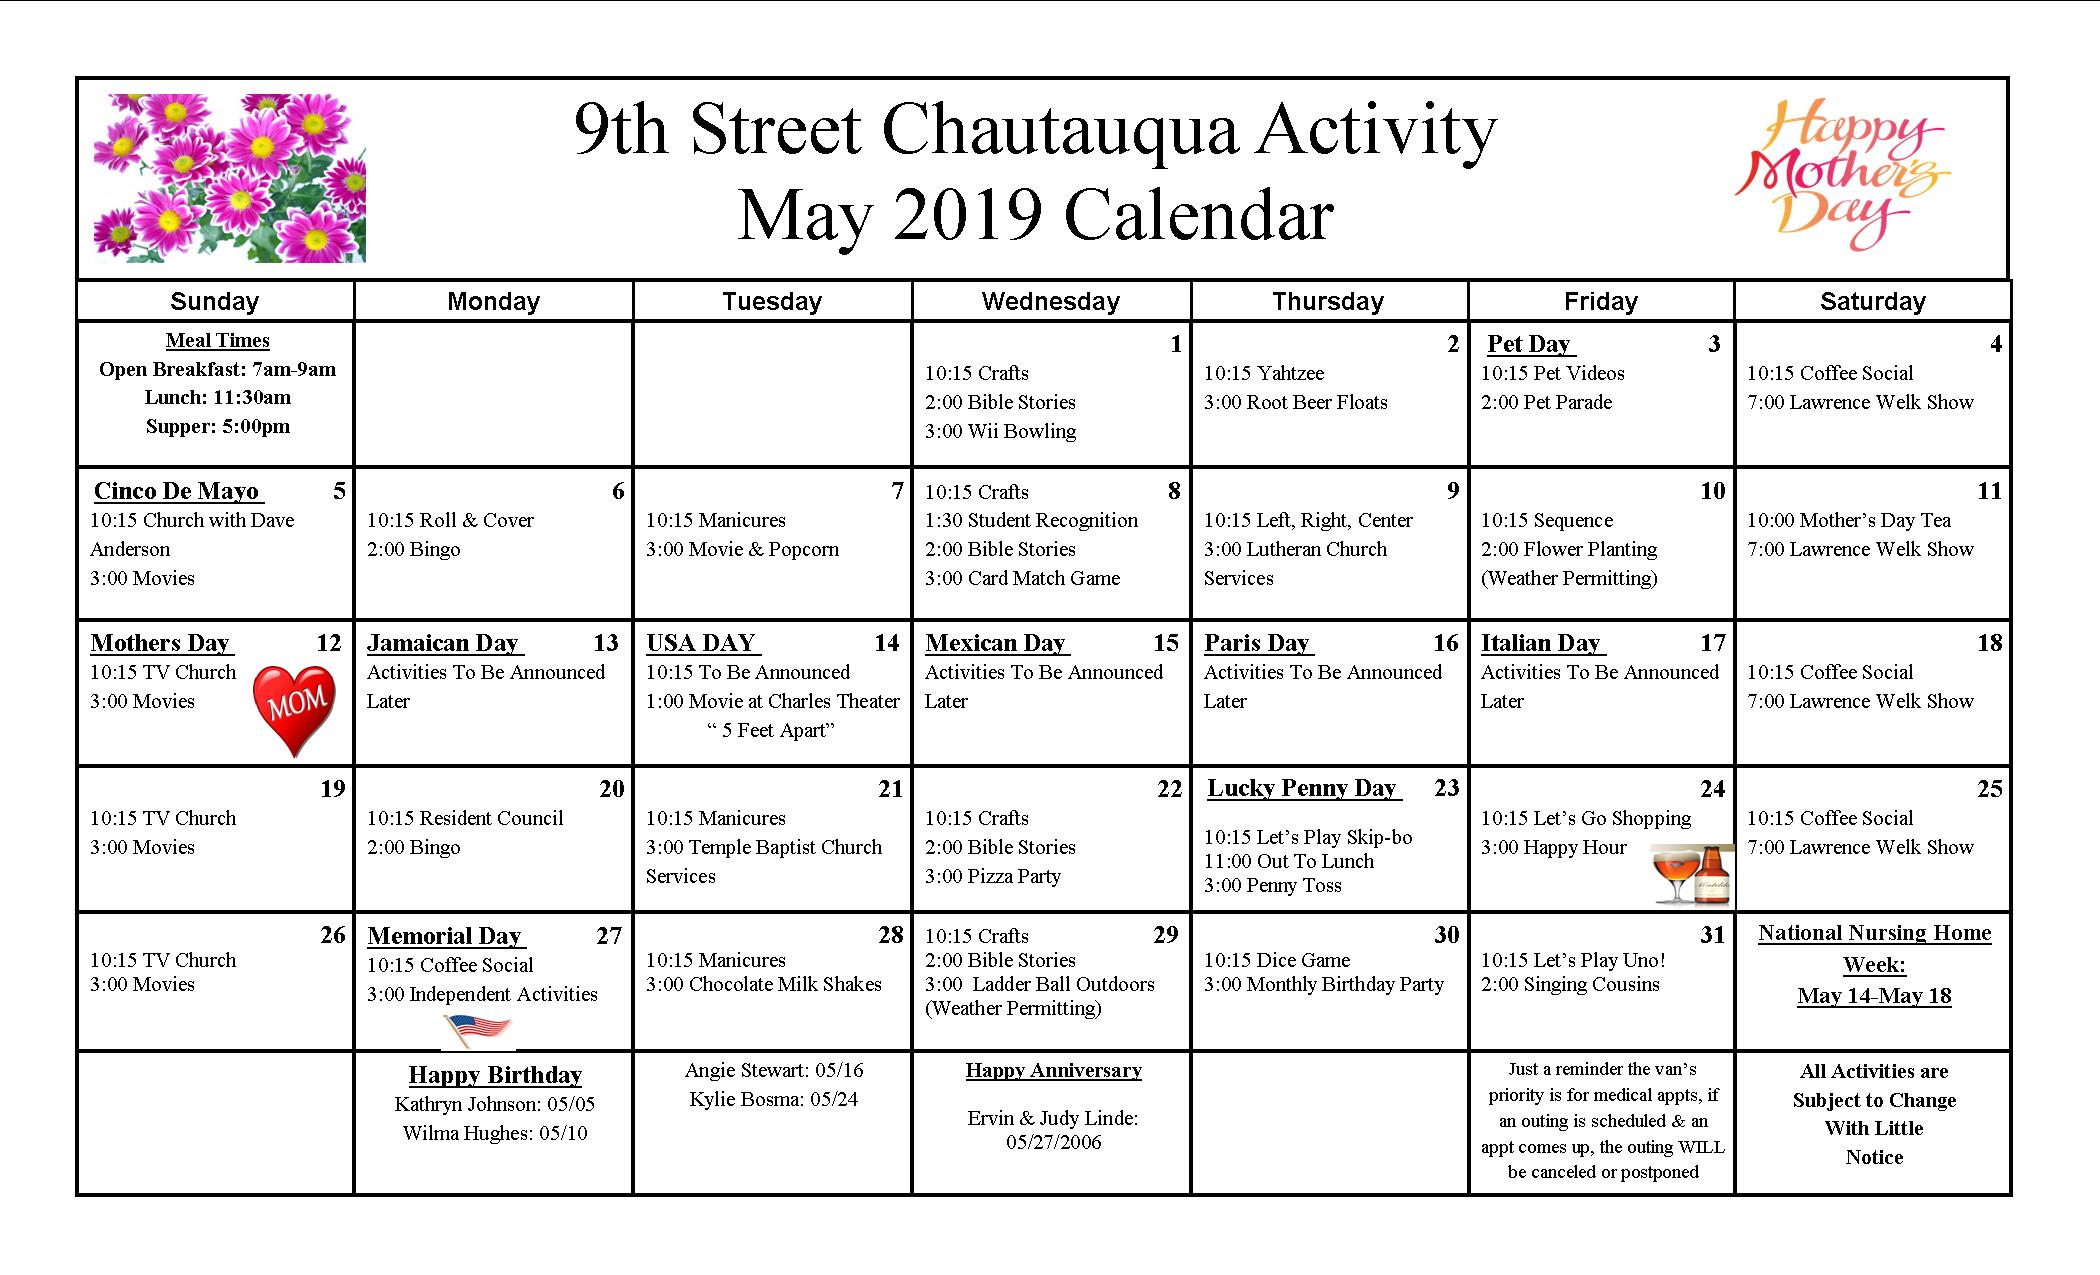 9th Street Activity Calendar May 2019